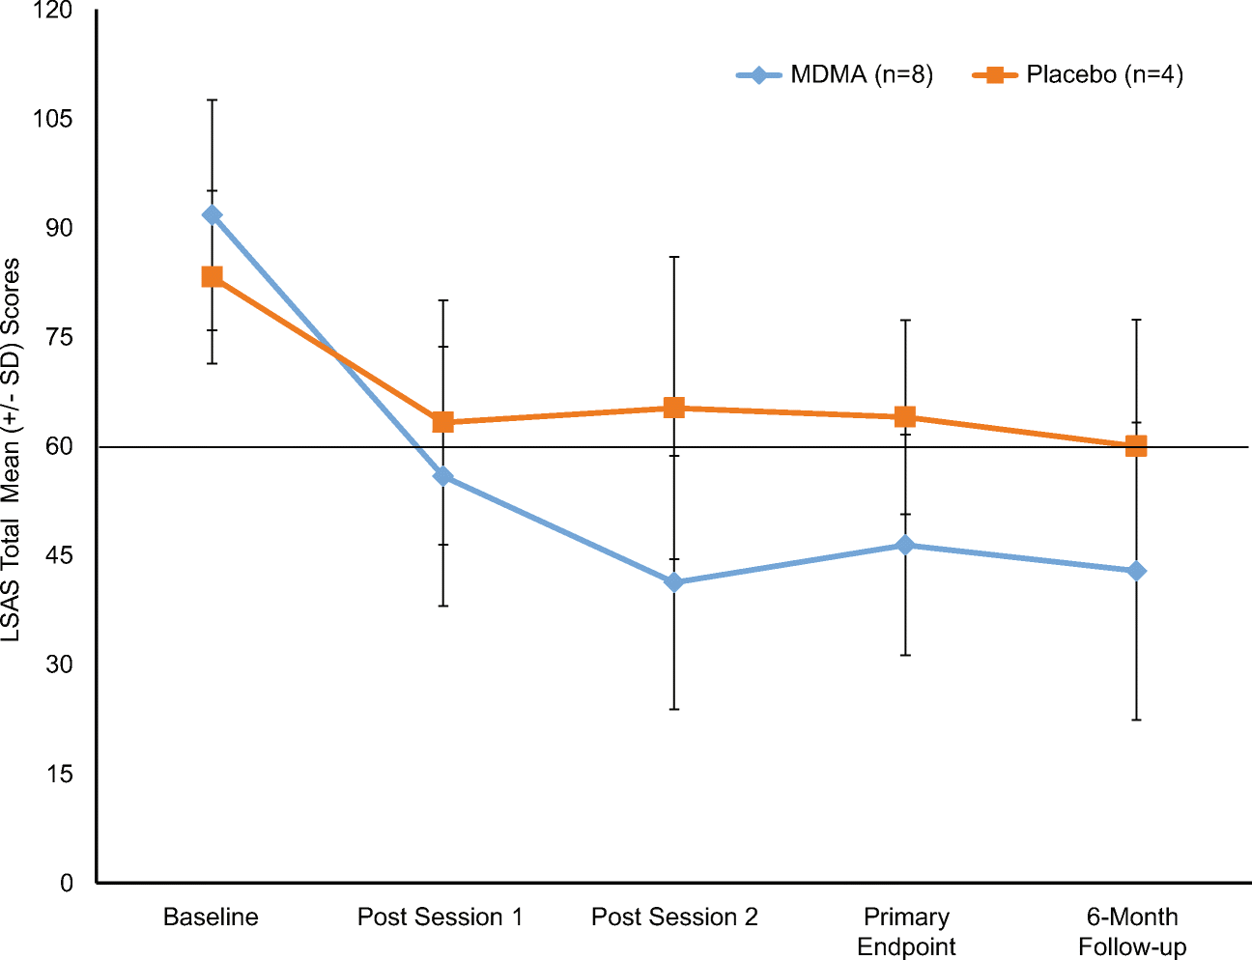 The comparison in LSAS scores between MDMA and placebo groups up to six-month follow up (Credit: Danforth, A.L., Grob, C.S., Struble, C. et al. Psychopharmacology 2018 - CC BY-NC-ND 4.0)